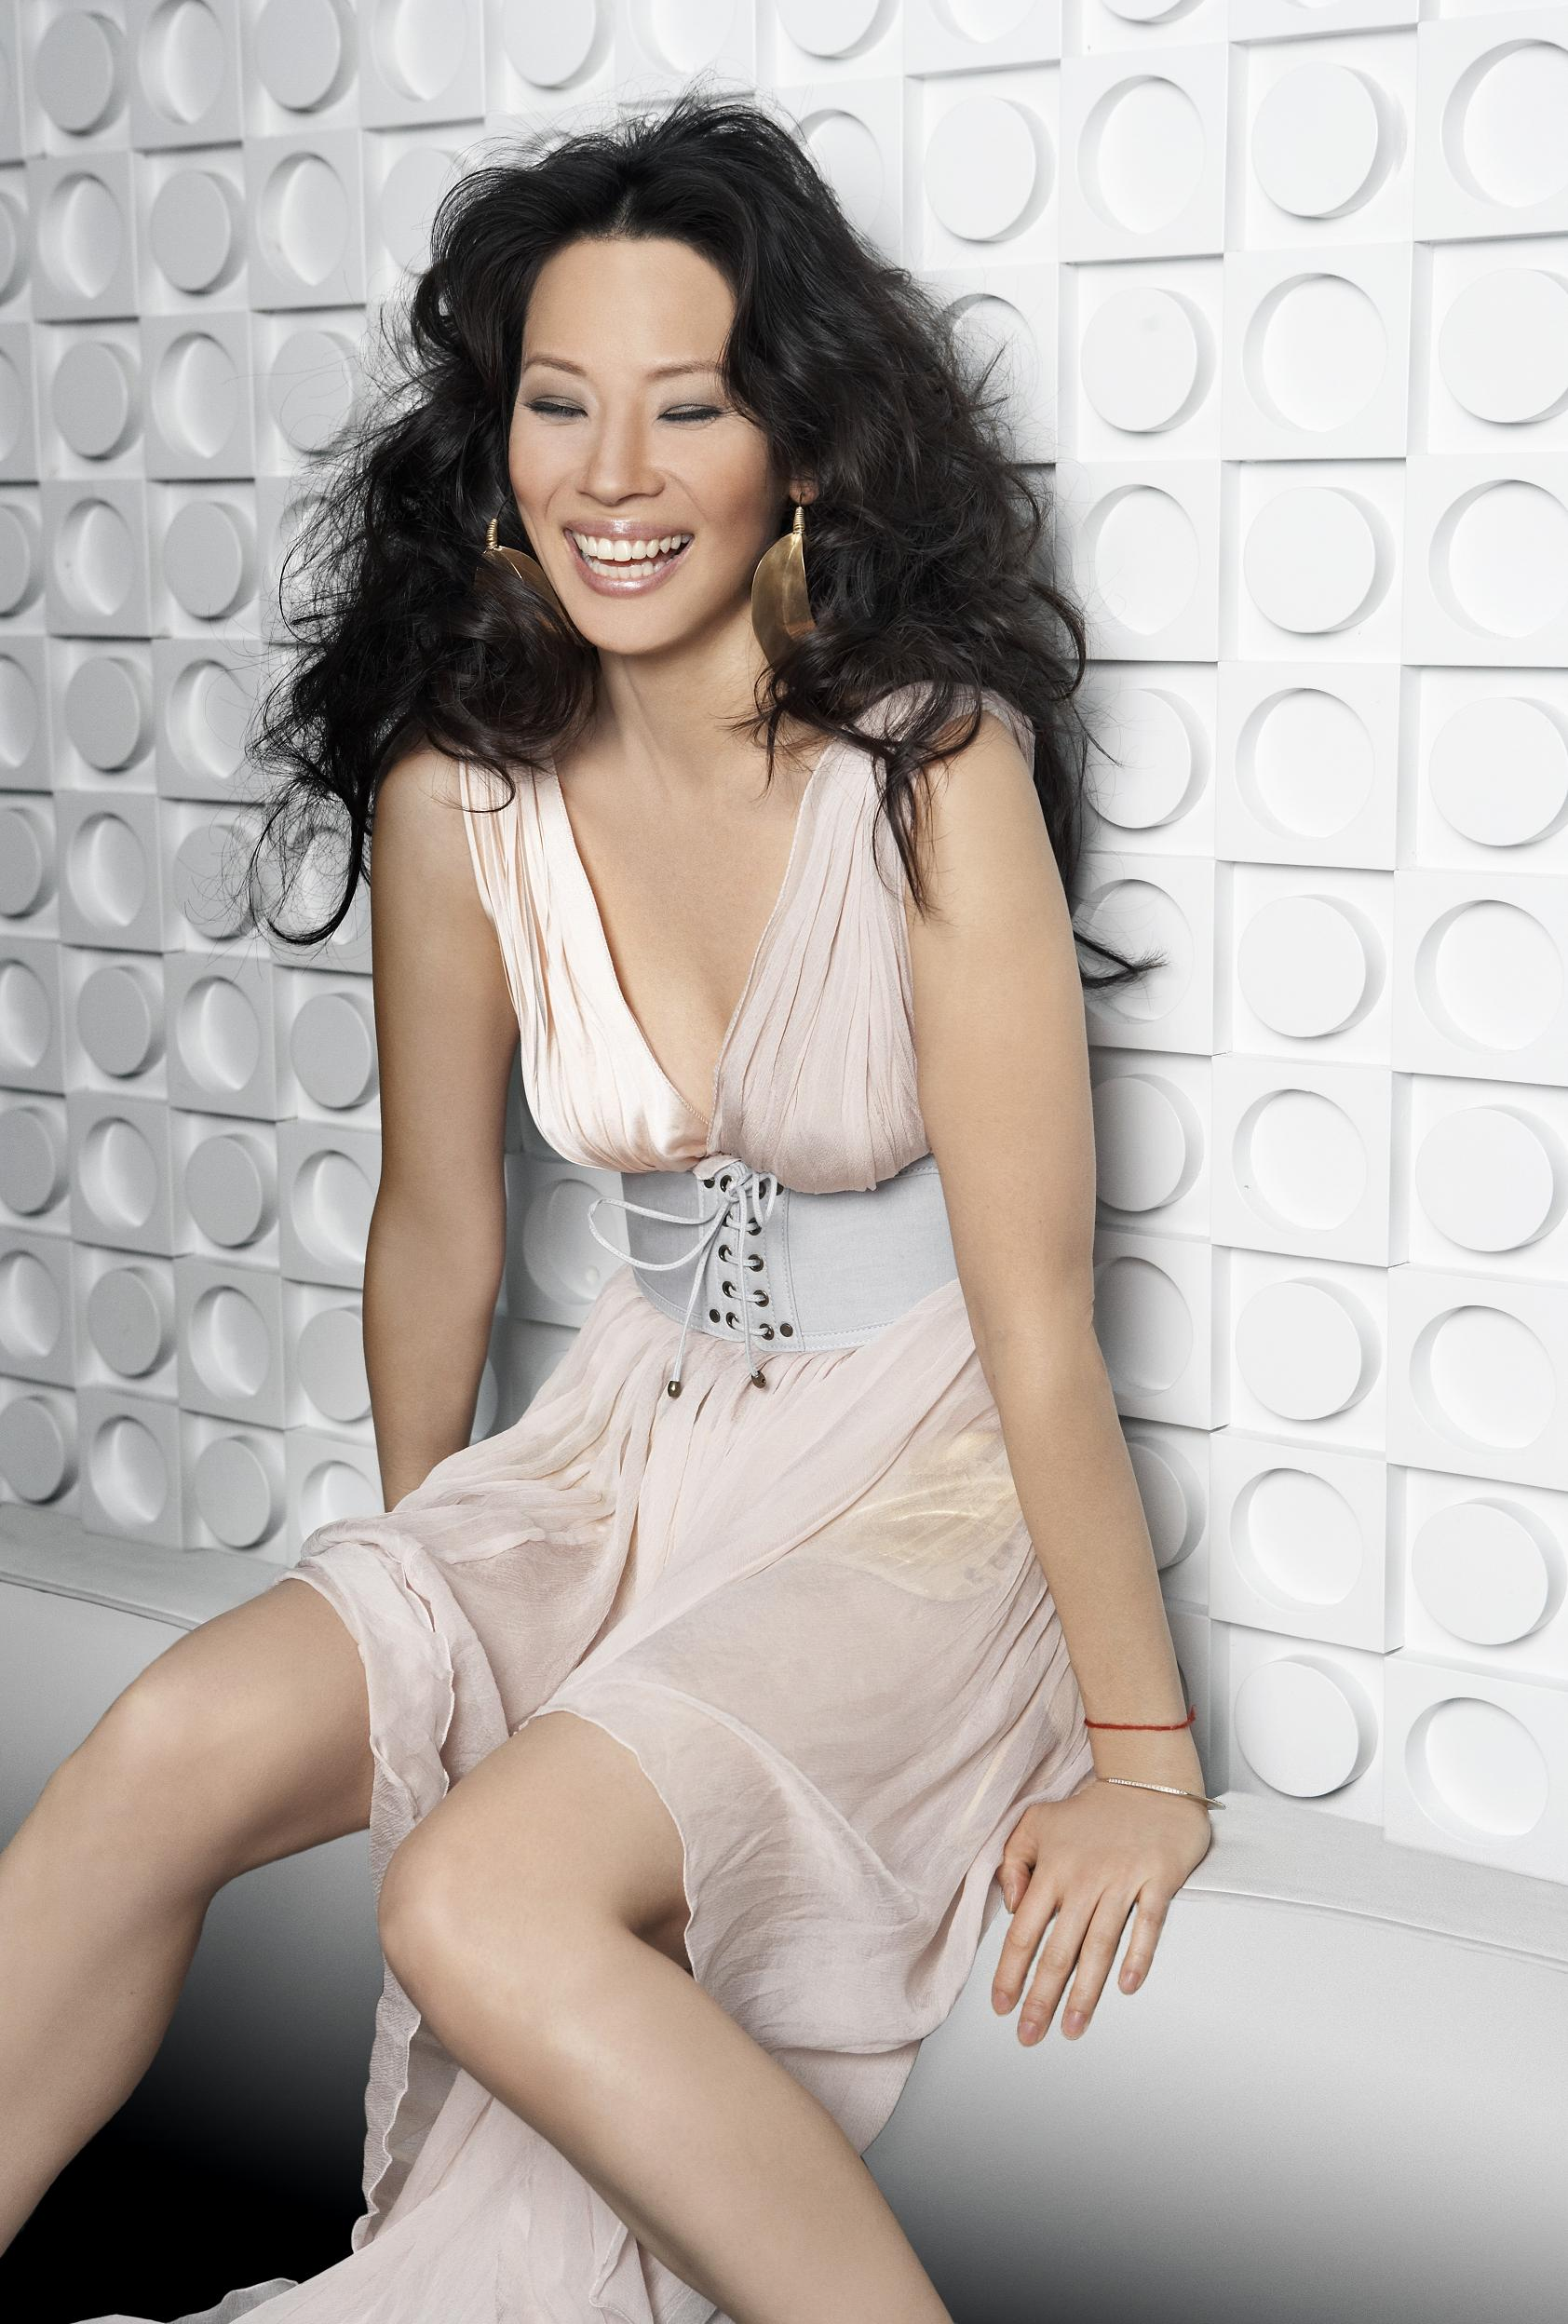 Photo of Lucy Liu #158411. Image size: 1684 х 2496. Upload date: 2009 ...: www.theplace2.ru/photos/Lucy-Liu-md25/pic-158411.html